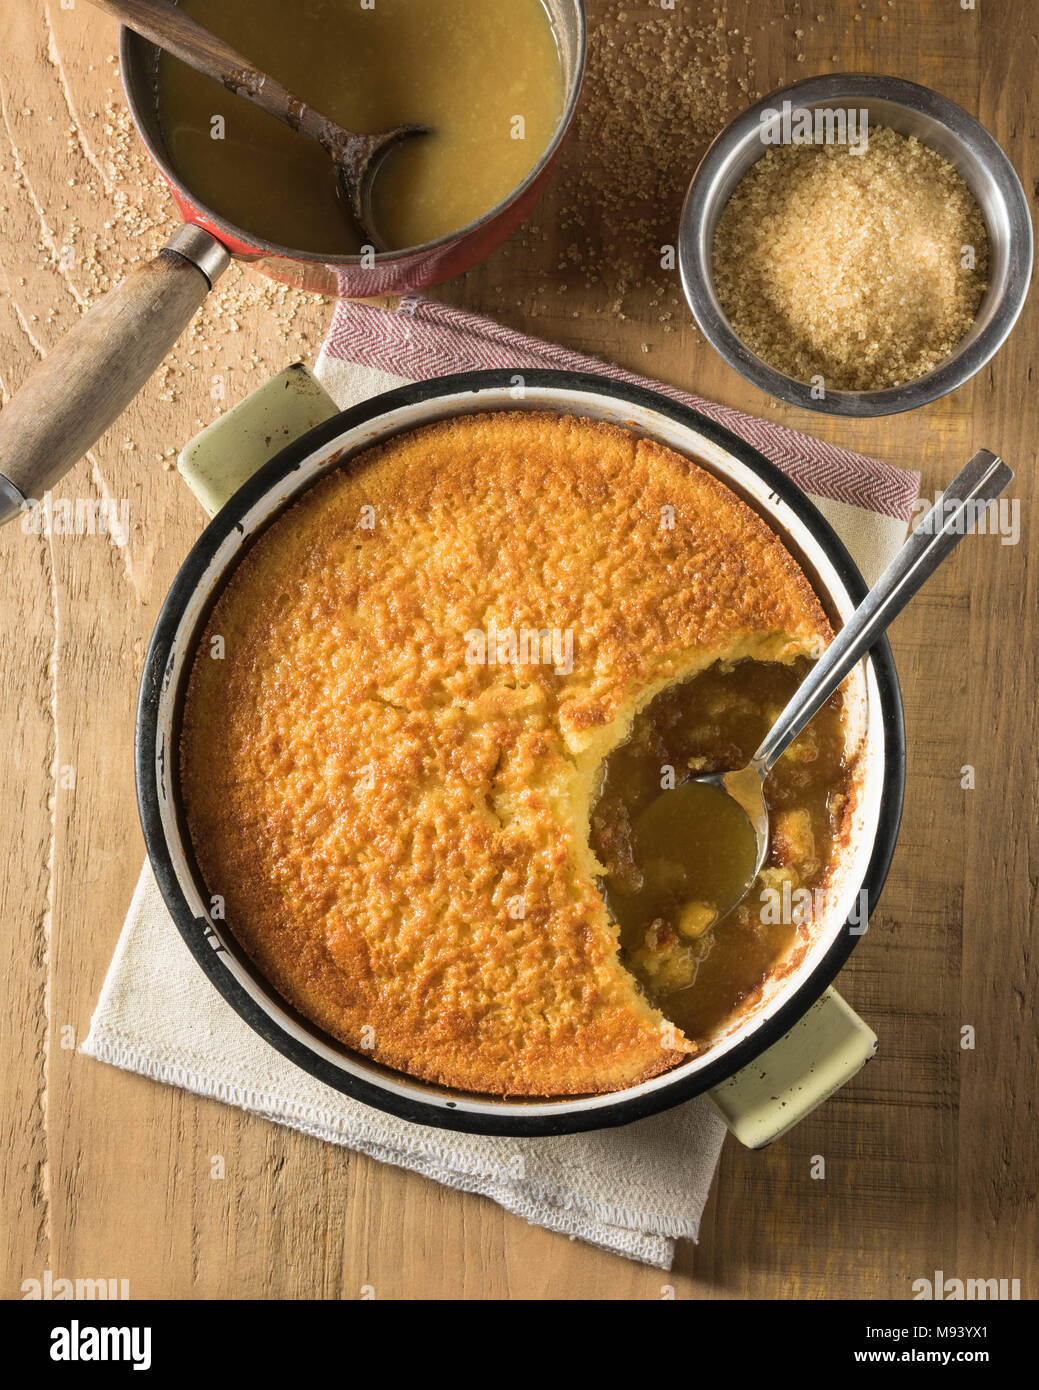 Pouding chômeur. Poor man's pudding. Canada Food - Stock Image